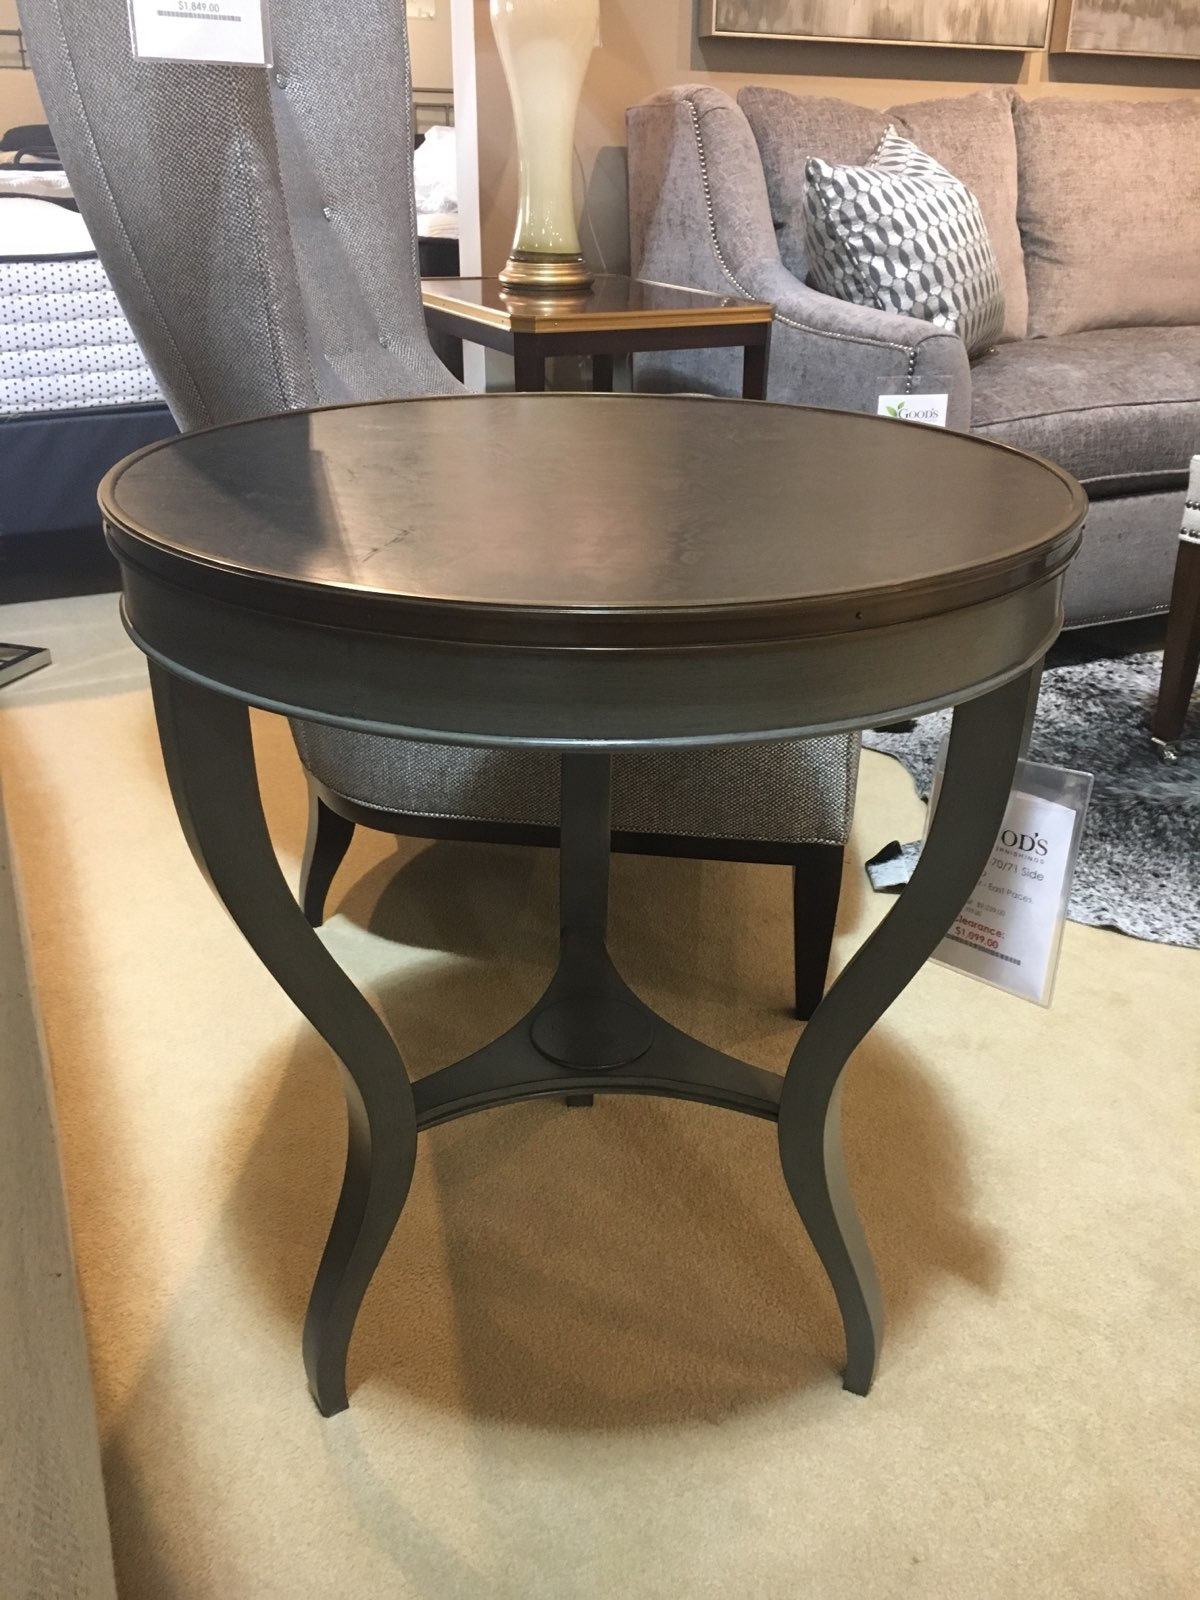 Hickory Chair Furniture Suzanne Kasler Side Table 1583 70/71 Clearance